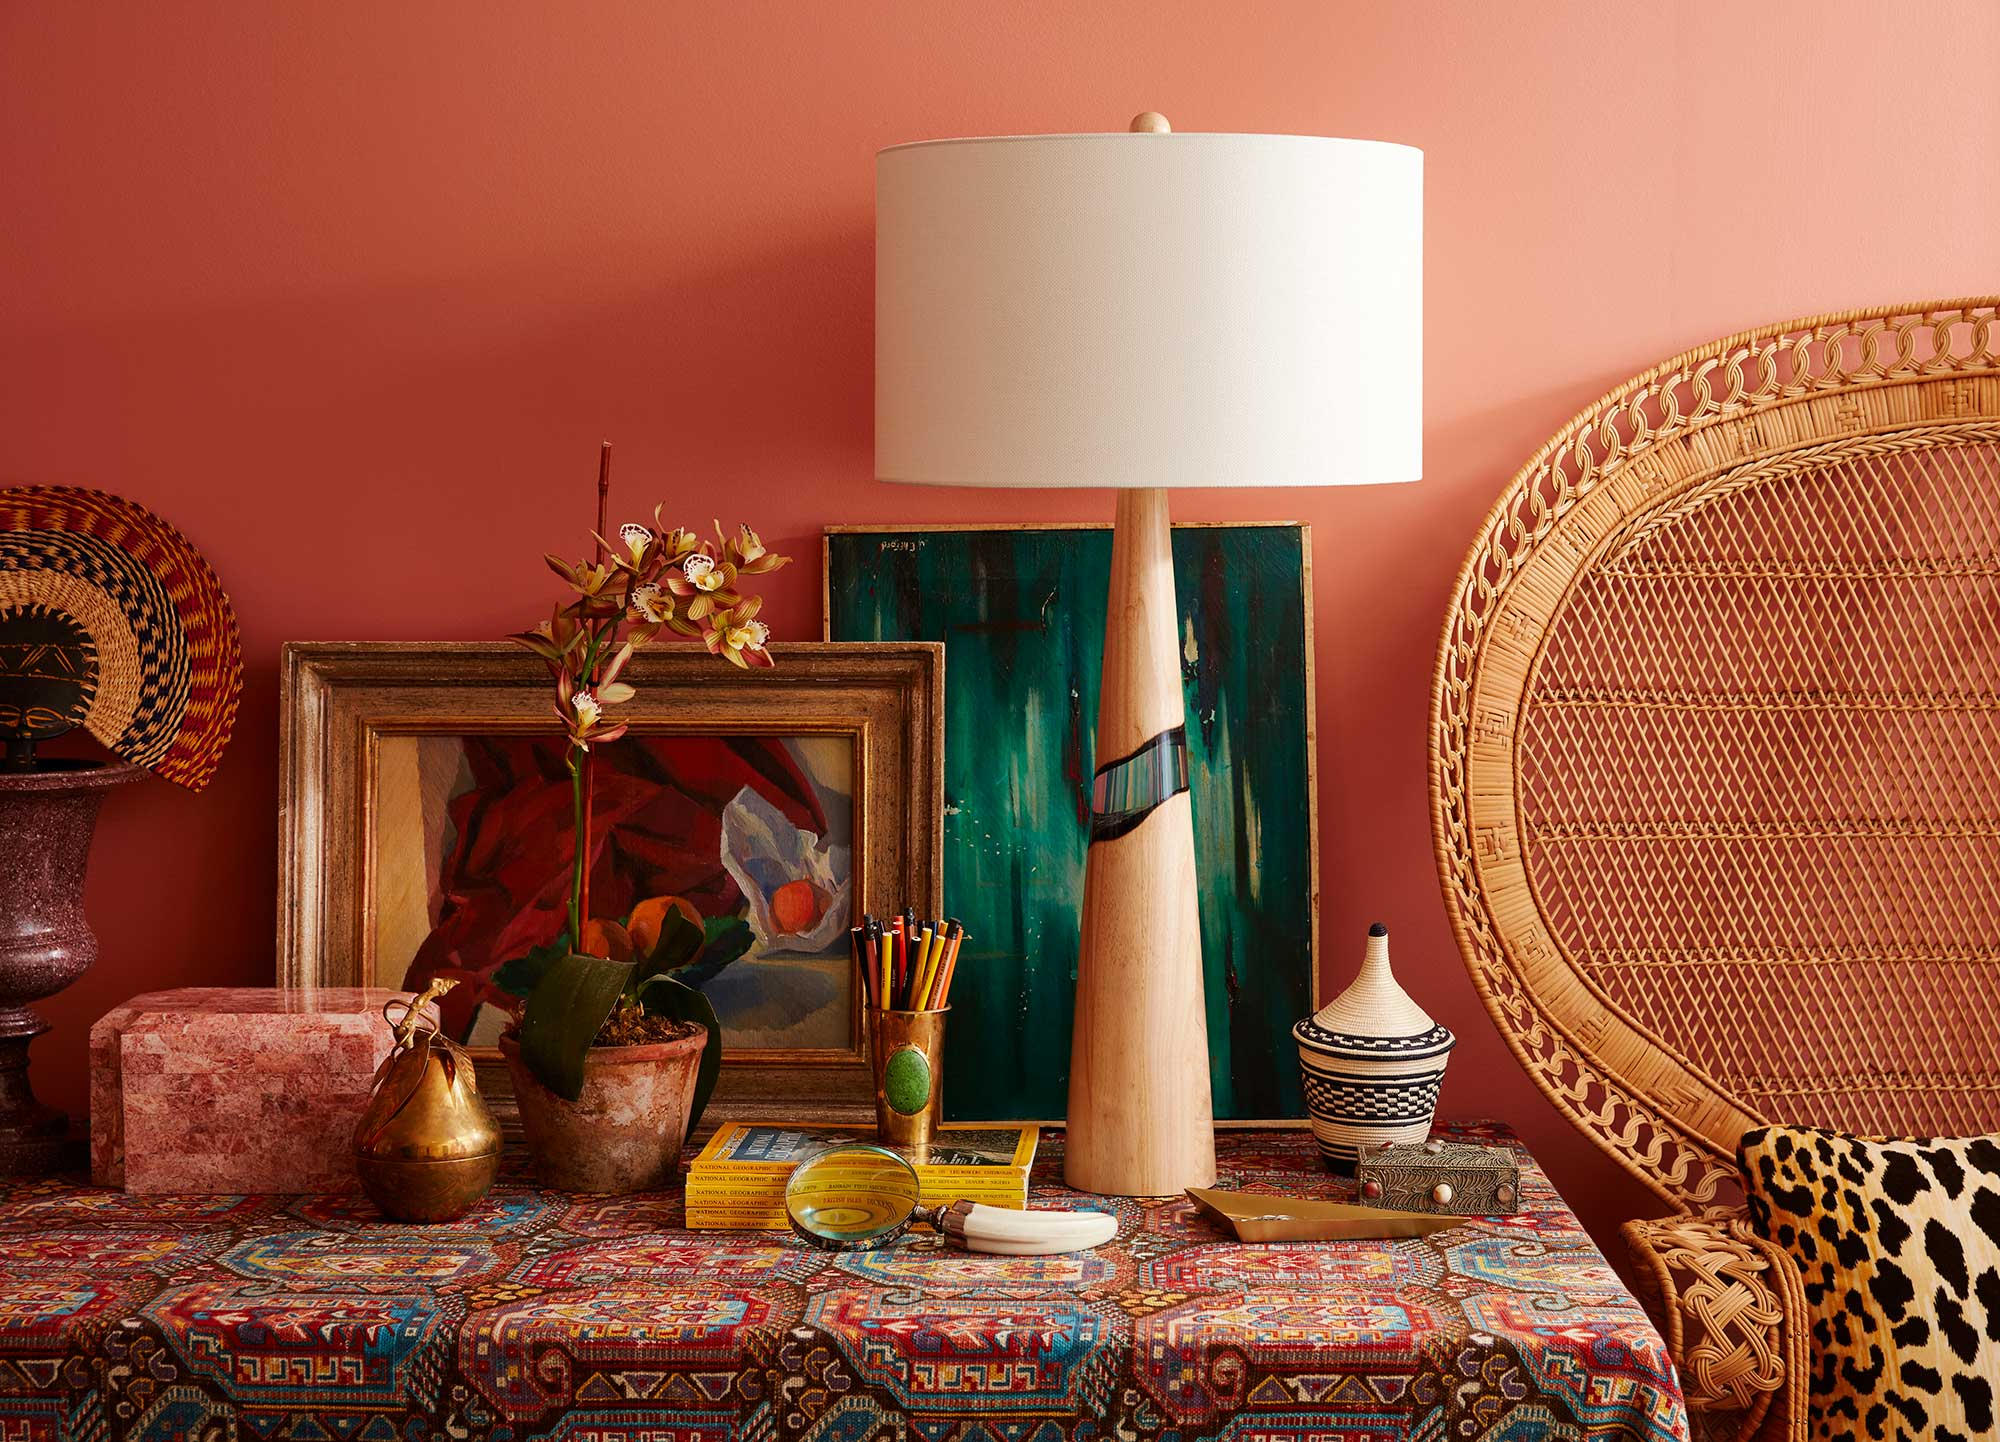 Catalog photograph featuring a colorful lamp in a stylish interior